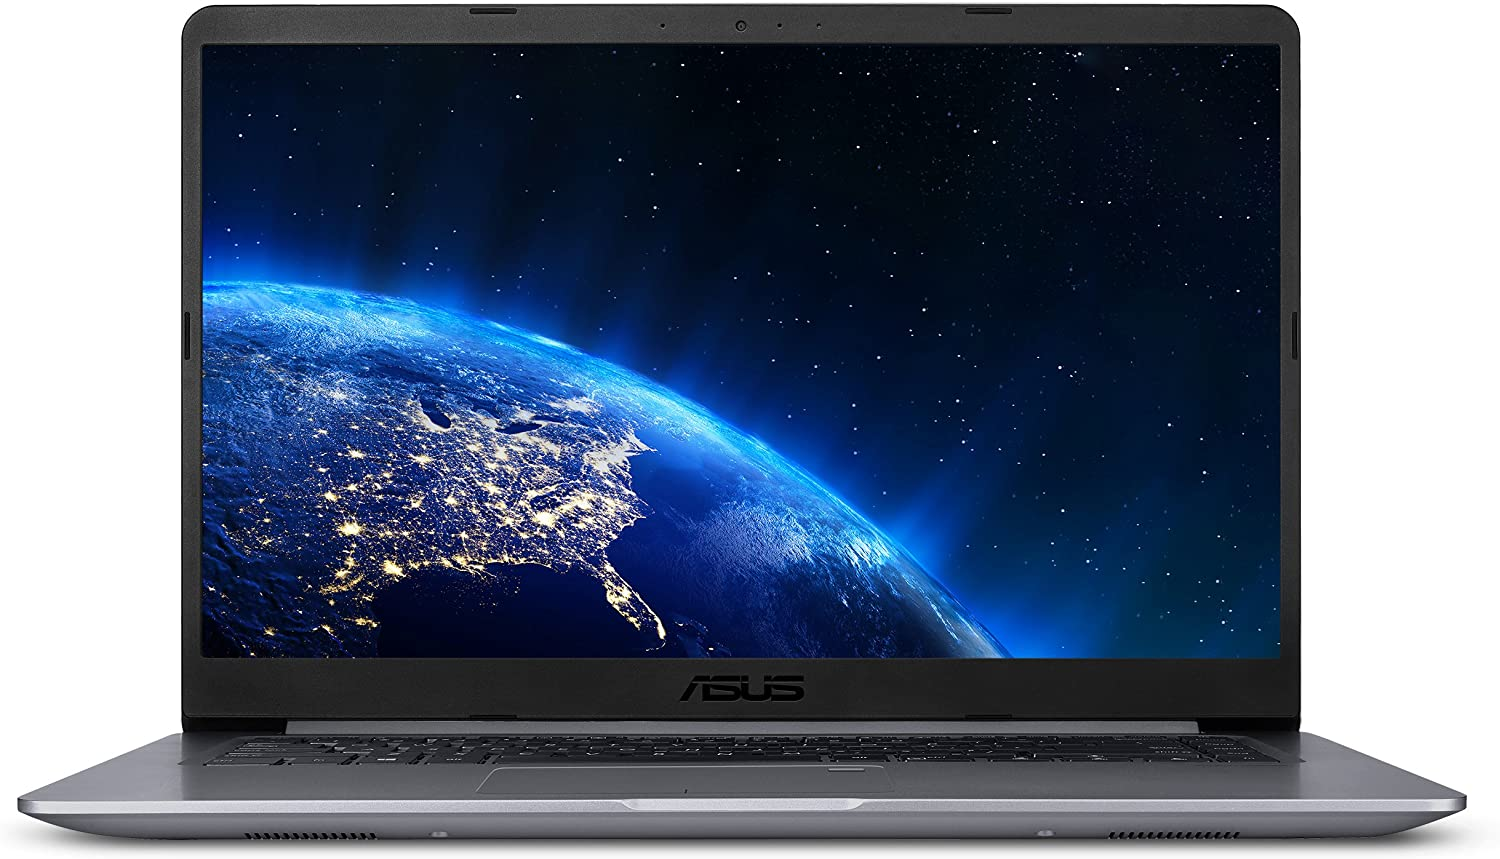 "ASUS VivoBook F510UA Thin and Lightweight 15.6"" FHD WideView NanoEdge Laptop, Intel Core i5-7200U 2.5GHz, 8GB DDR4 RAM, 1TB HDD, USB Type-C, Fingerprint Reader, Windows 10 – F510UA-AH50"